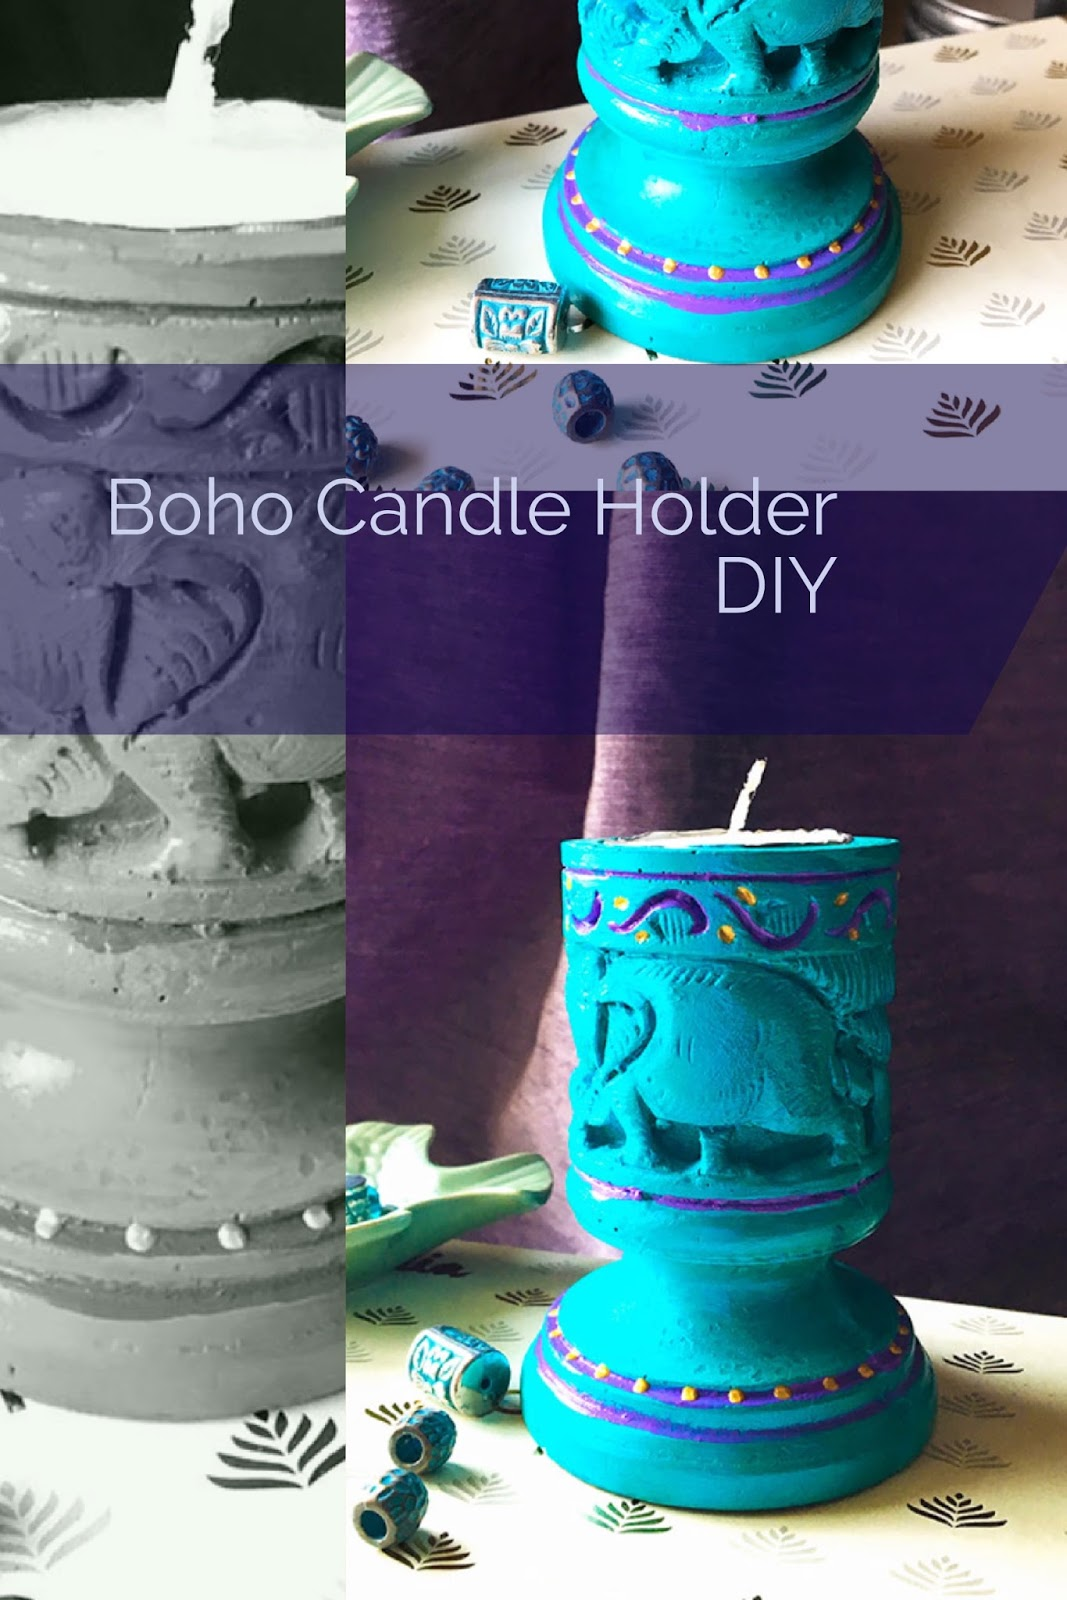 Candle holder makeover with paint